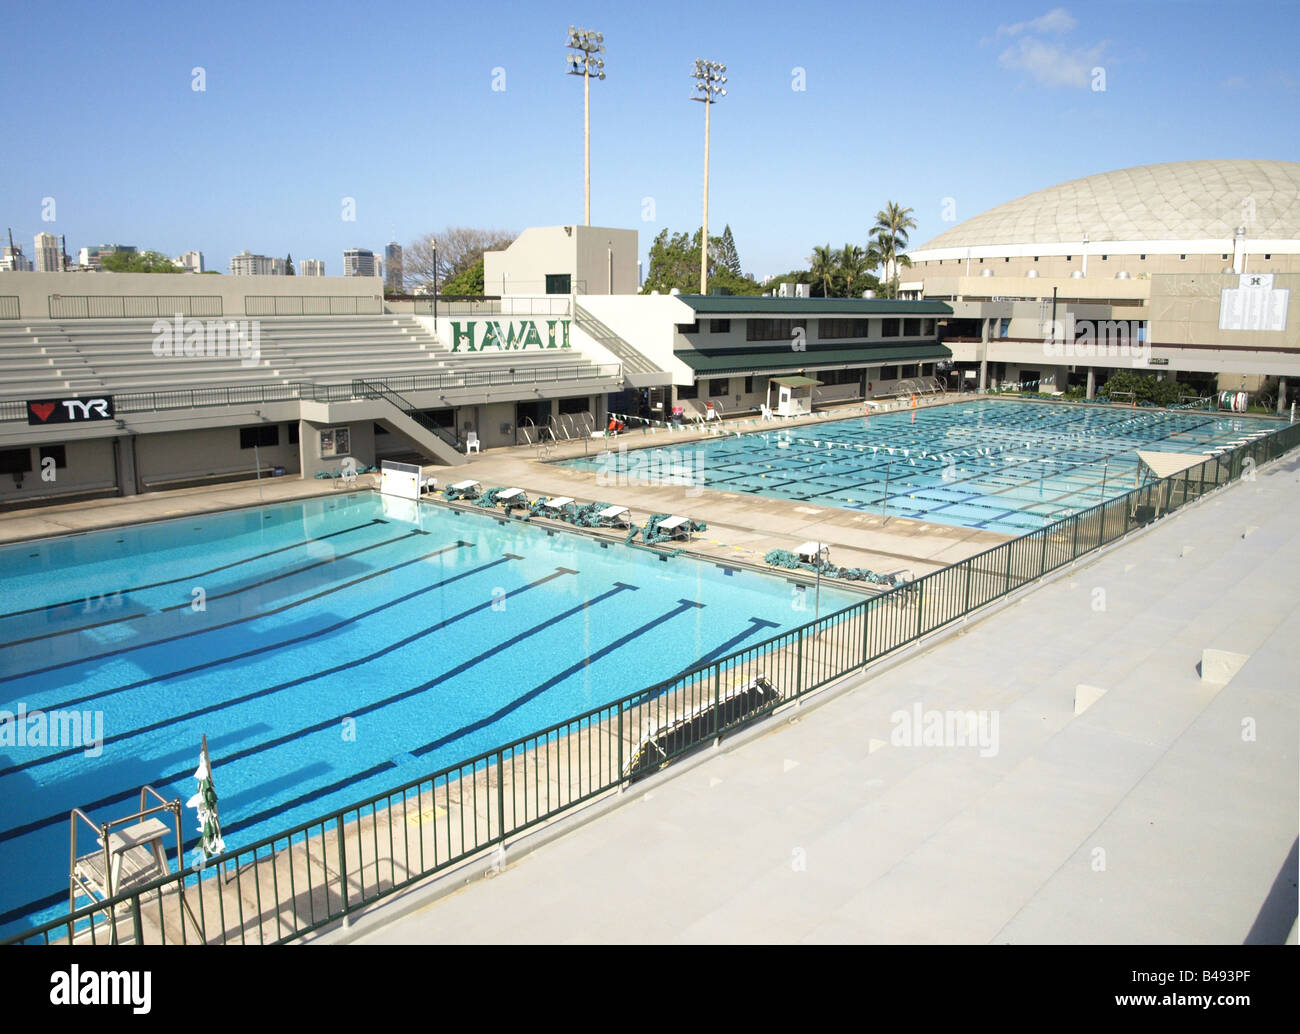 Swimming Pool University Of Hawaii Campus Stock Photo Royalty Free Image 19869543 Alamy